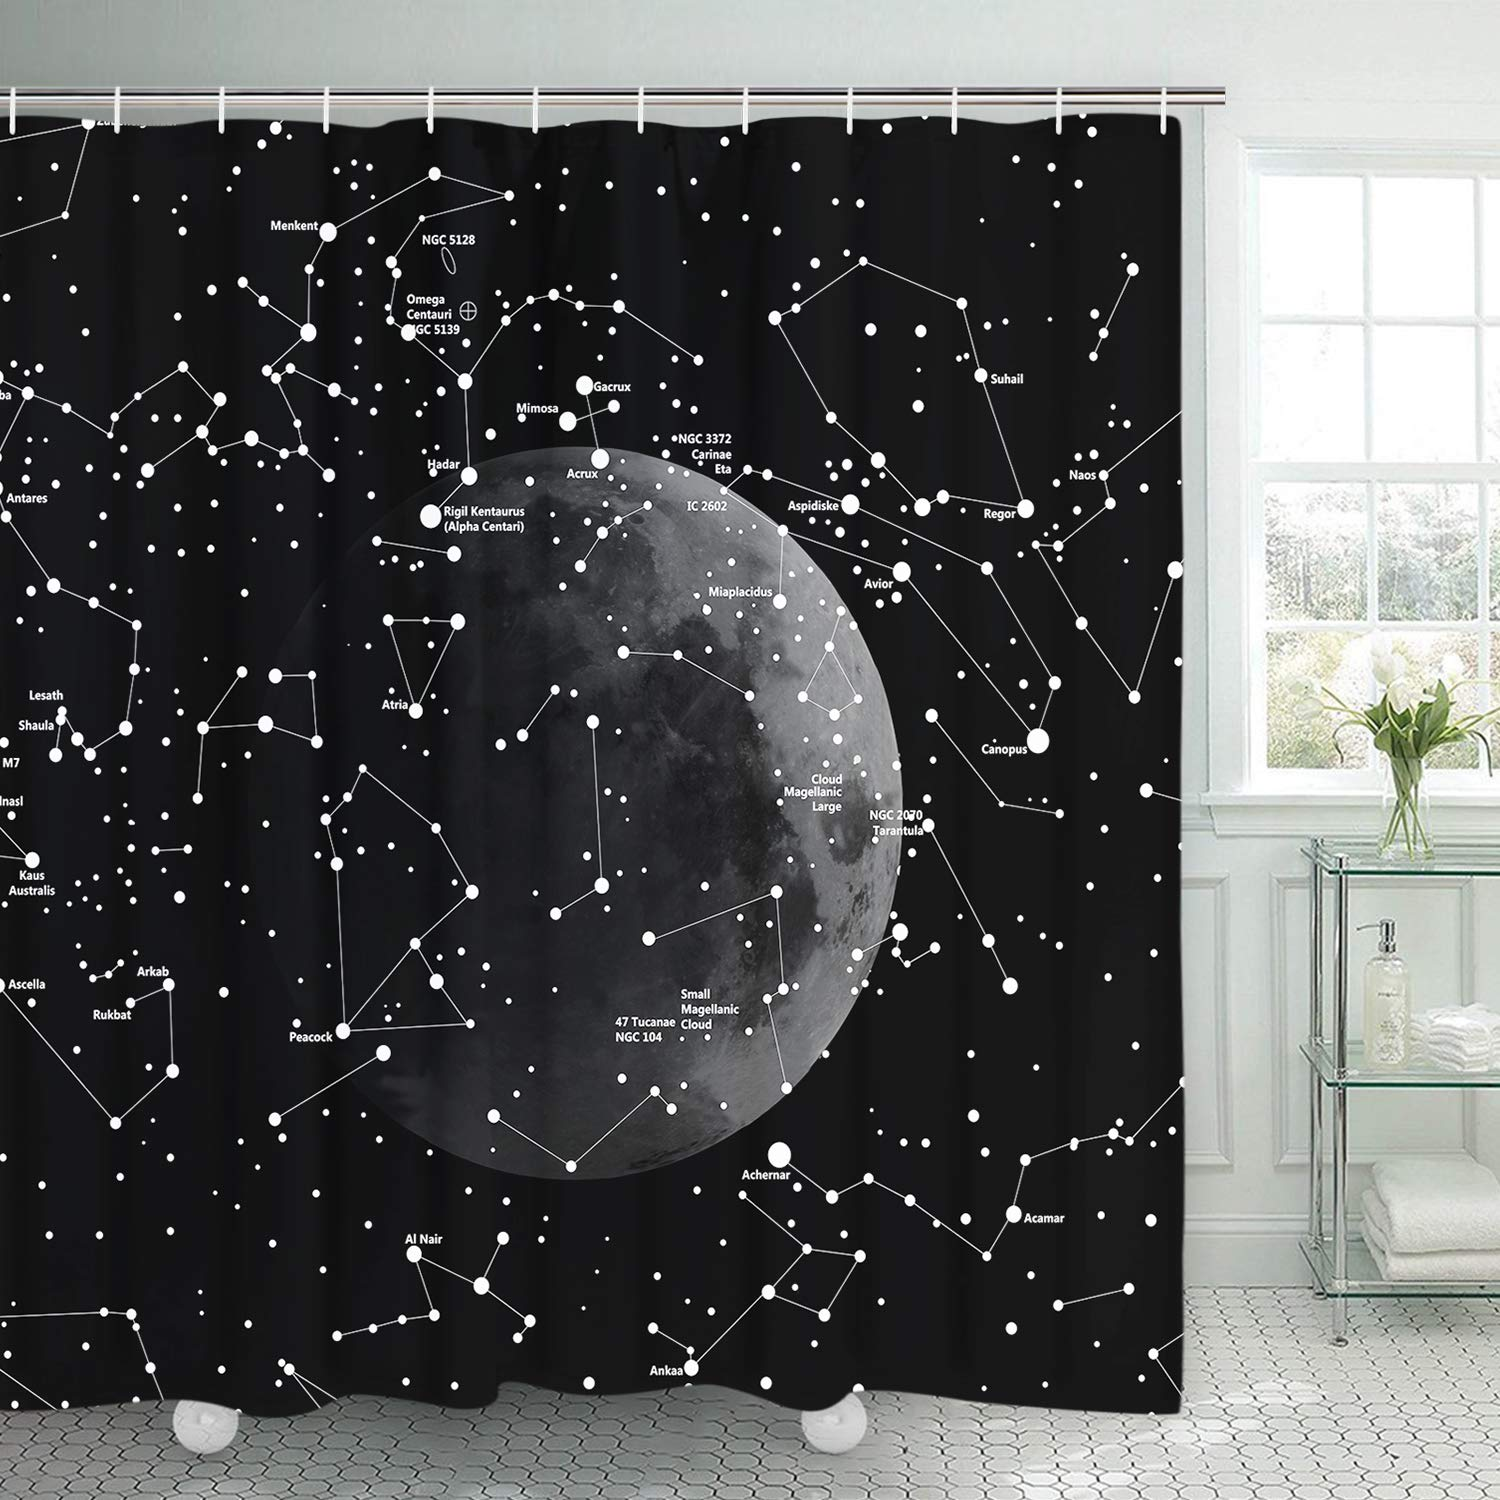 Smurfs Yingda Moon Constellation Shower Curtain With 12 Hooks Black And White Astronomy Durable Waterproof Mildew Resistant Bath For